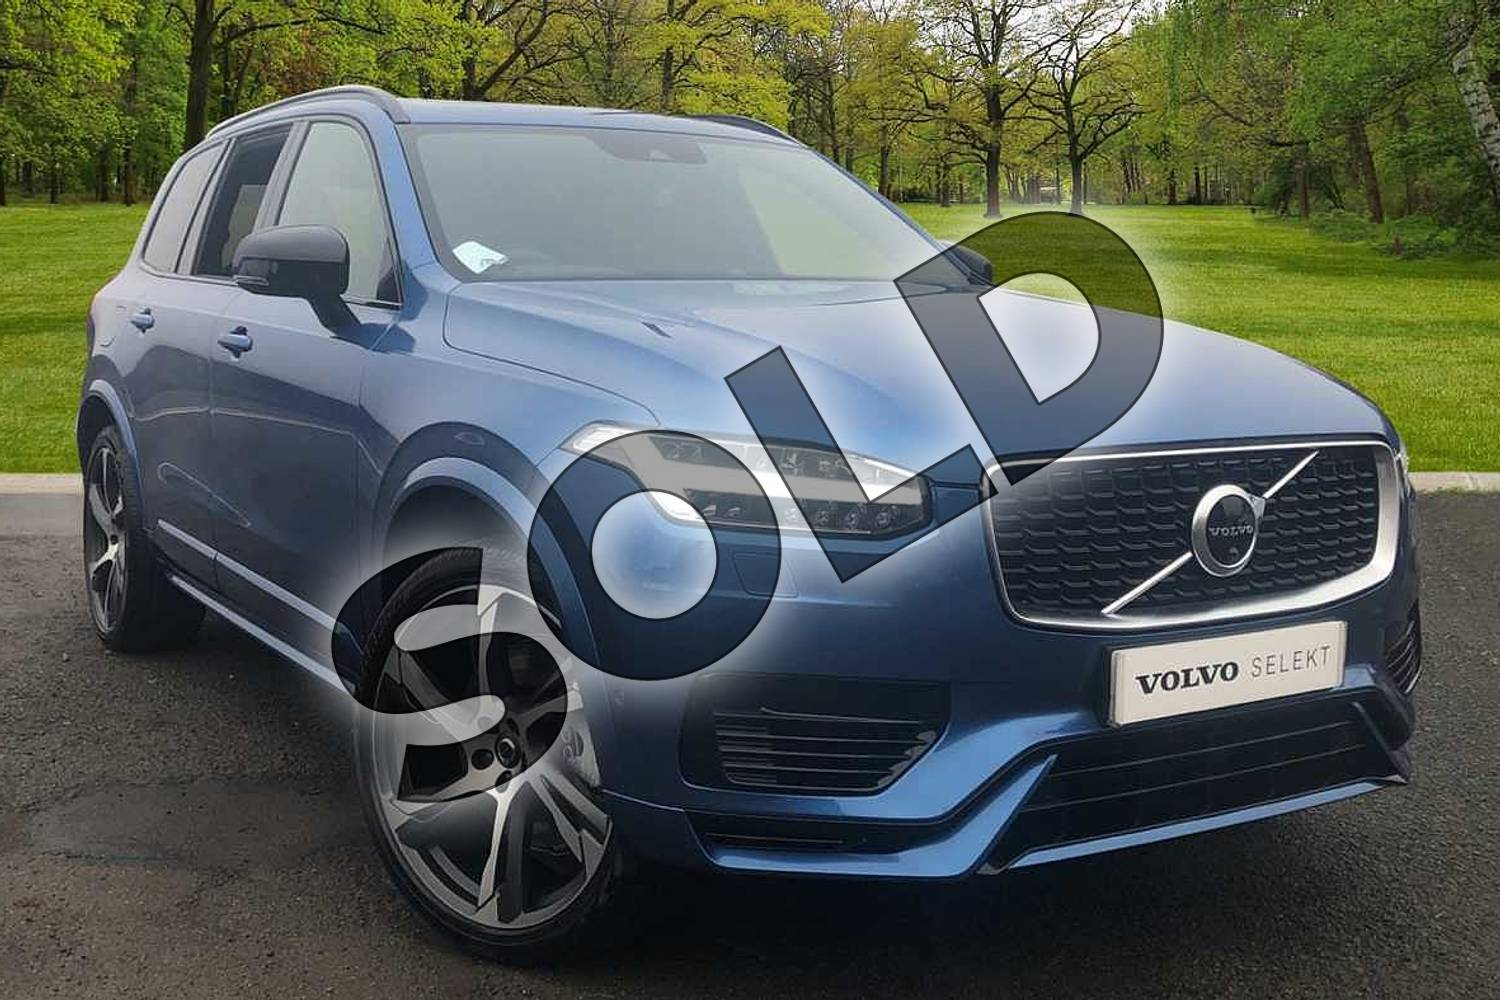 Volvo Xc90 2 0 T8 Hybrid R Design Pro 5dr Geartronic For